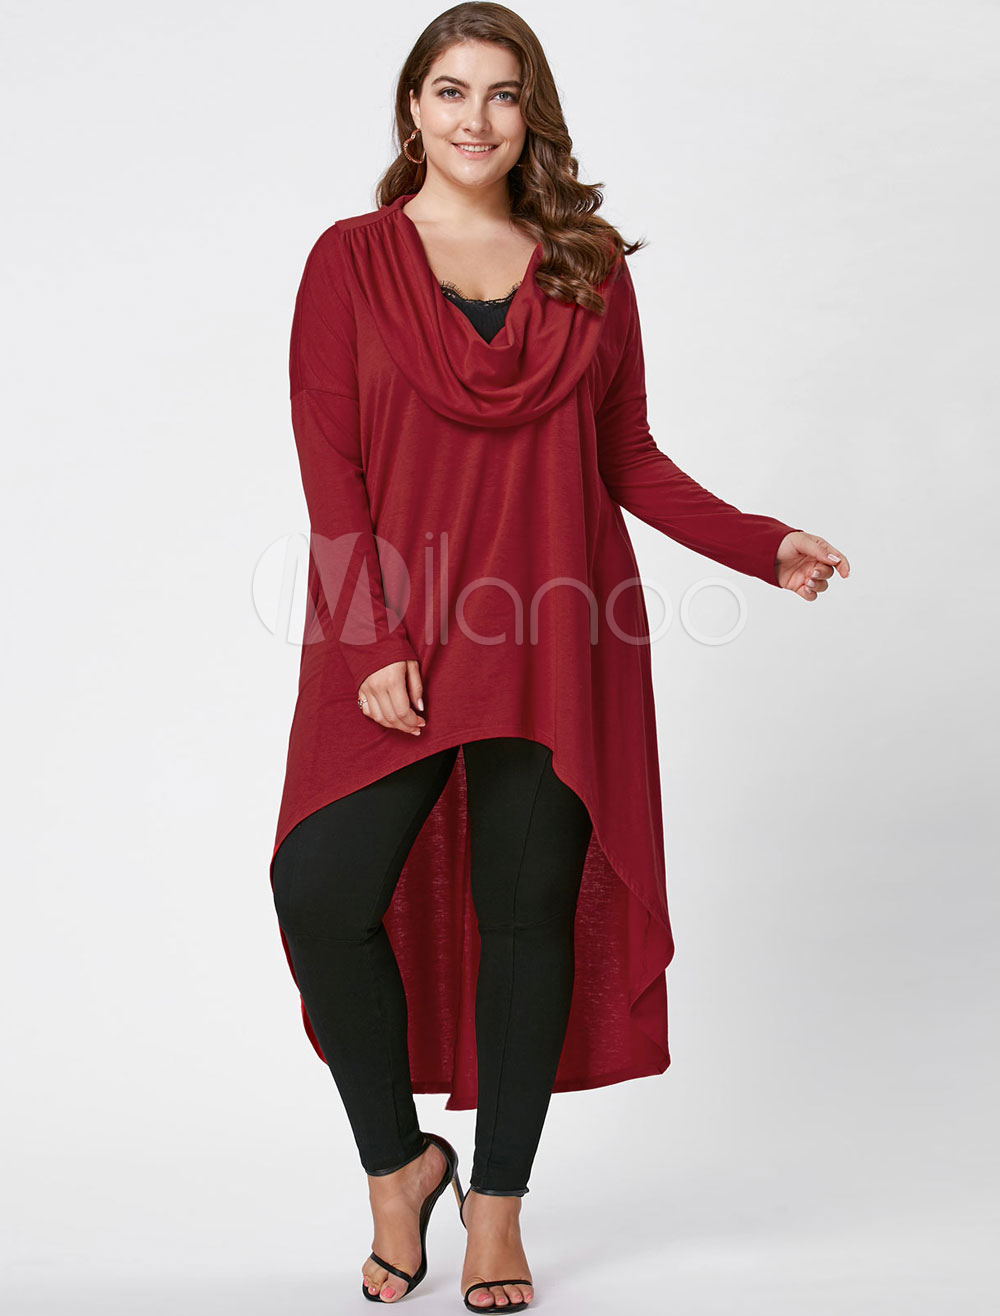 Women Dress Red Plus Size Cowl Neckline Long Sleeve High Low Spring Women Shift Dress thumbnail